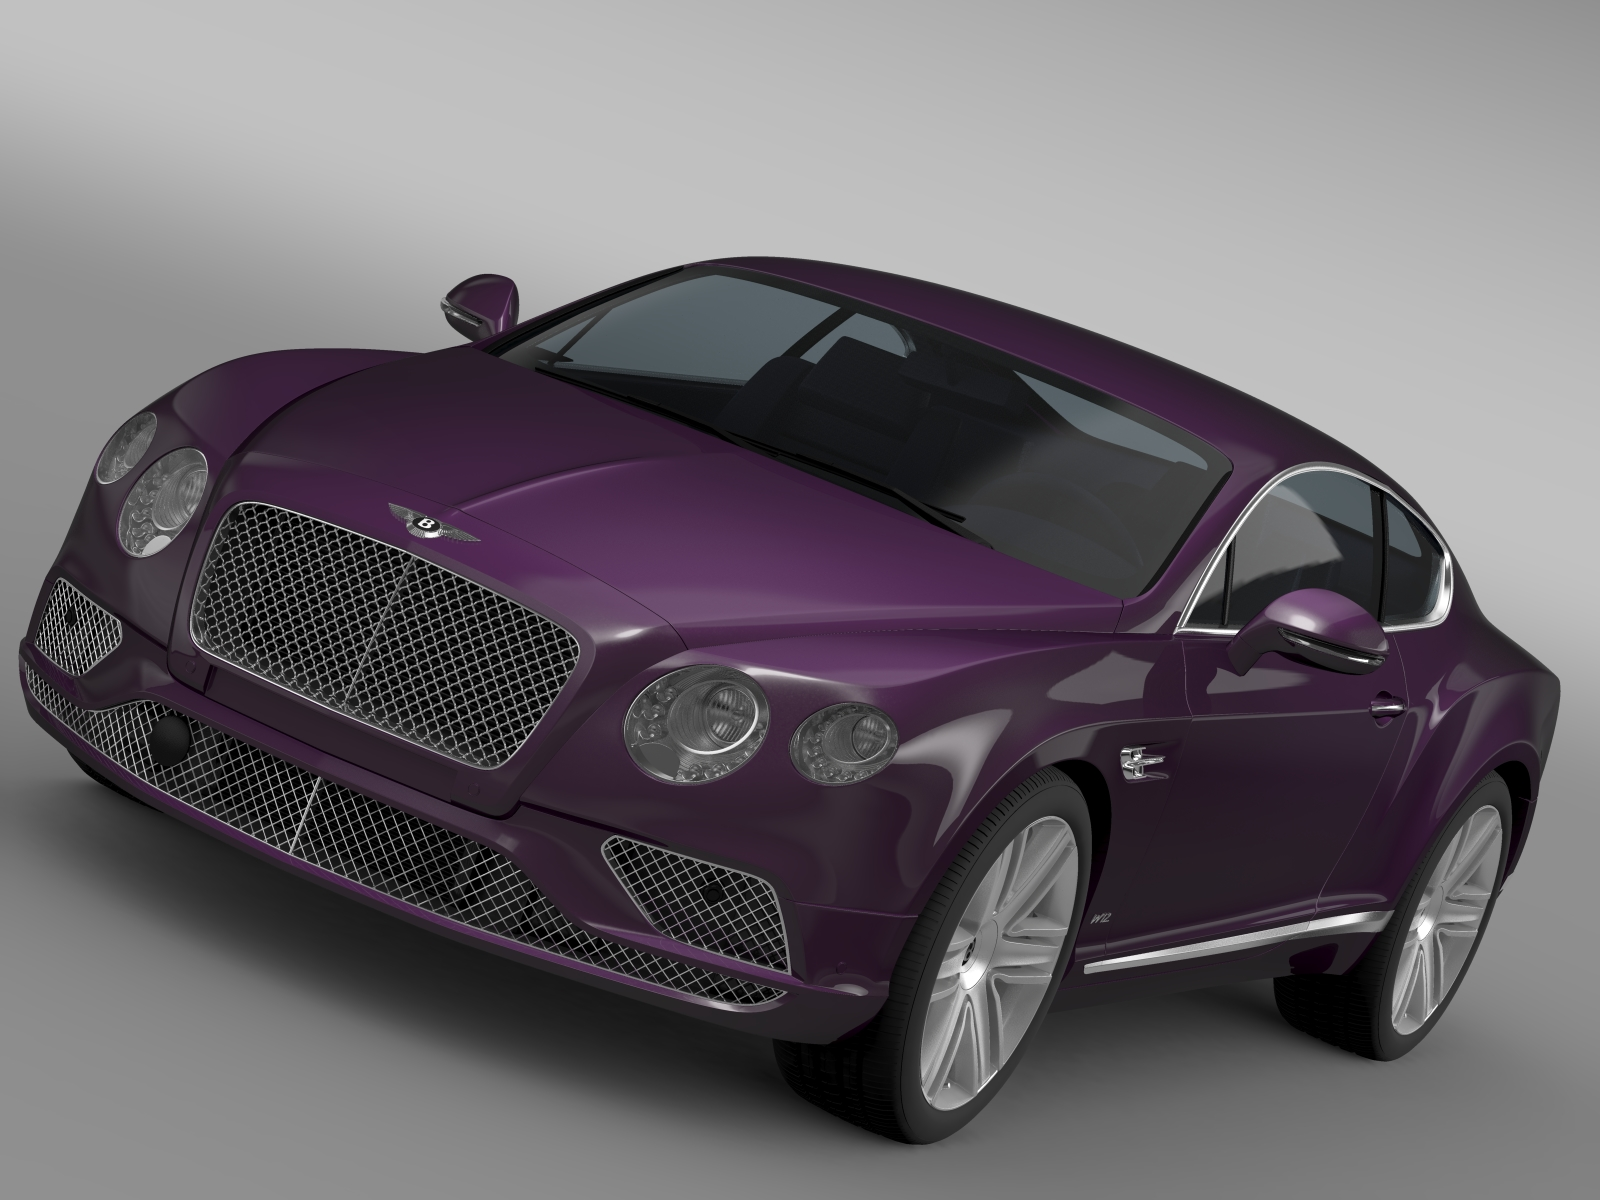 bentley continental gt 2015 3d model 3ds max fbx c4d lwo ma mb hrc xsi obj 210951